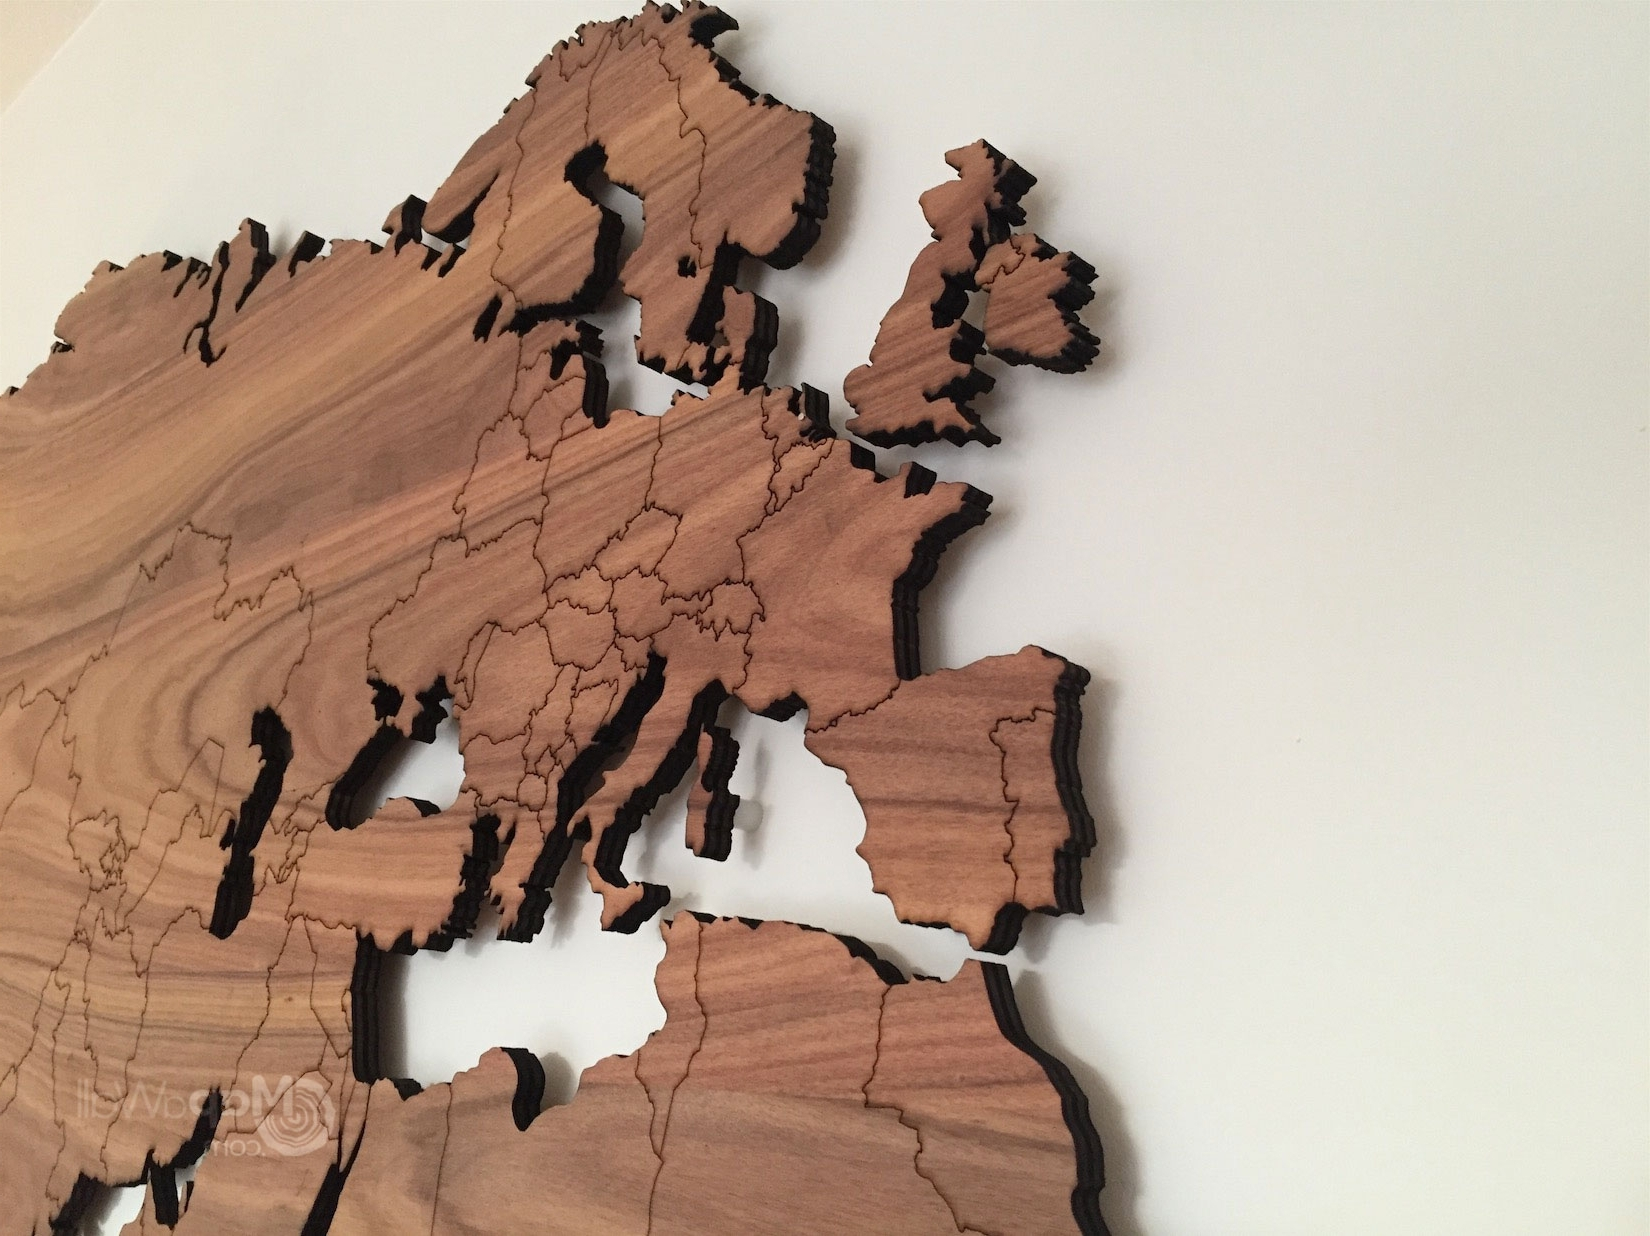 Wood Wall Art Large World Map Wooden Decor Feerick (View 15 of 15)